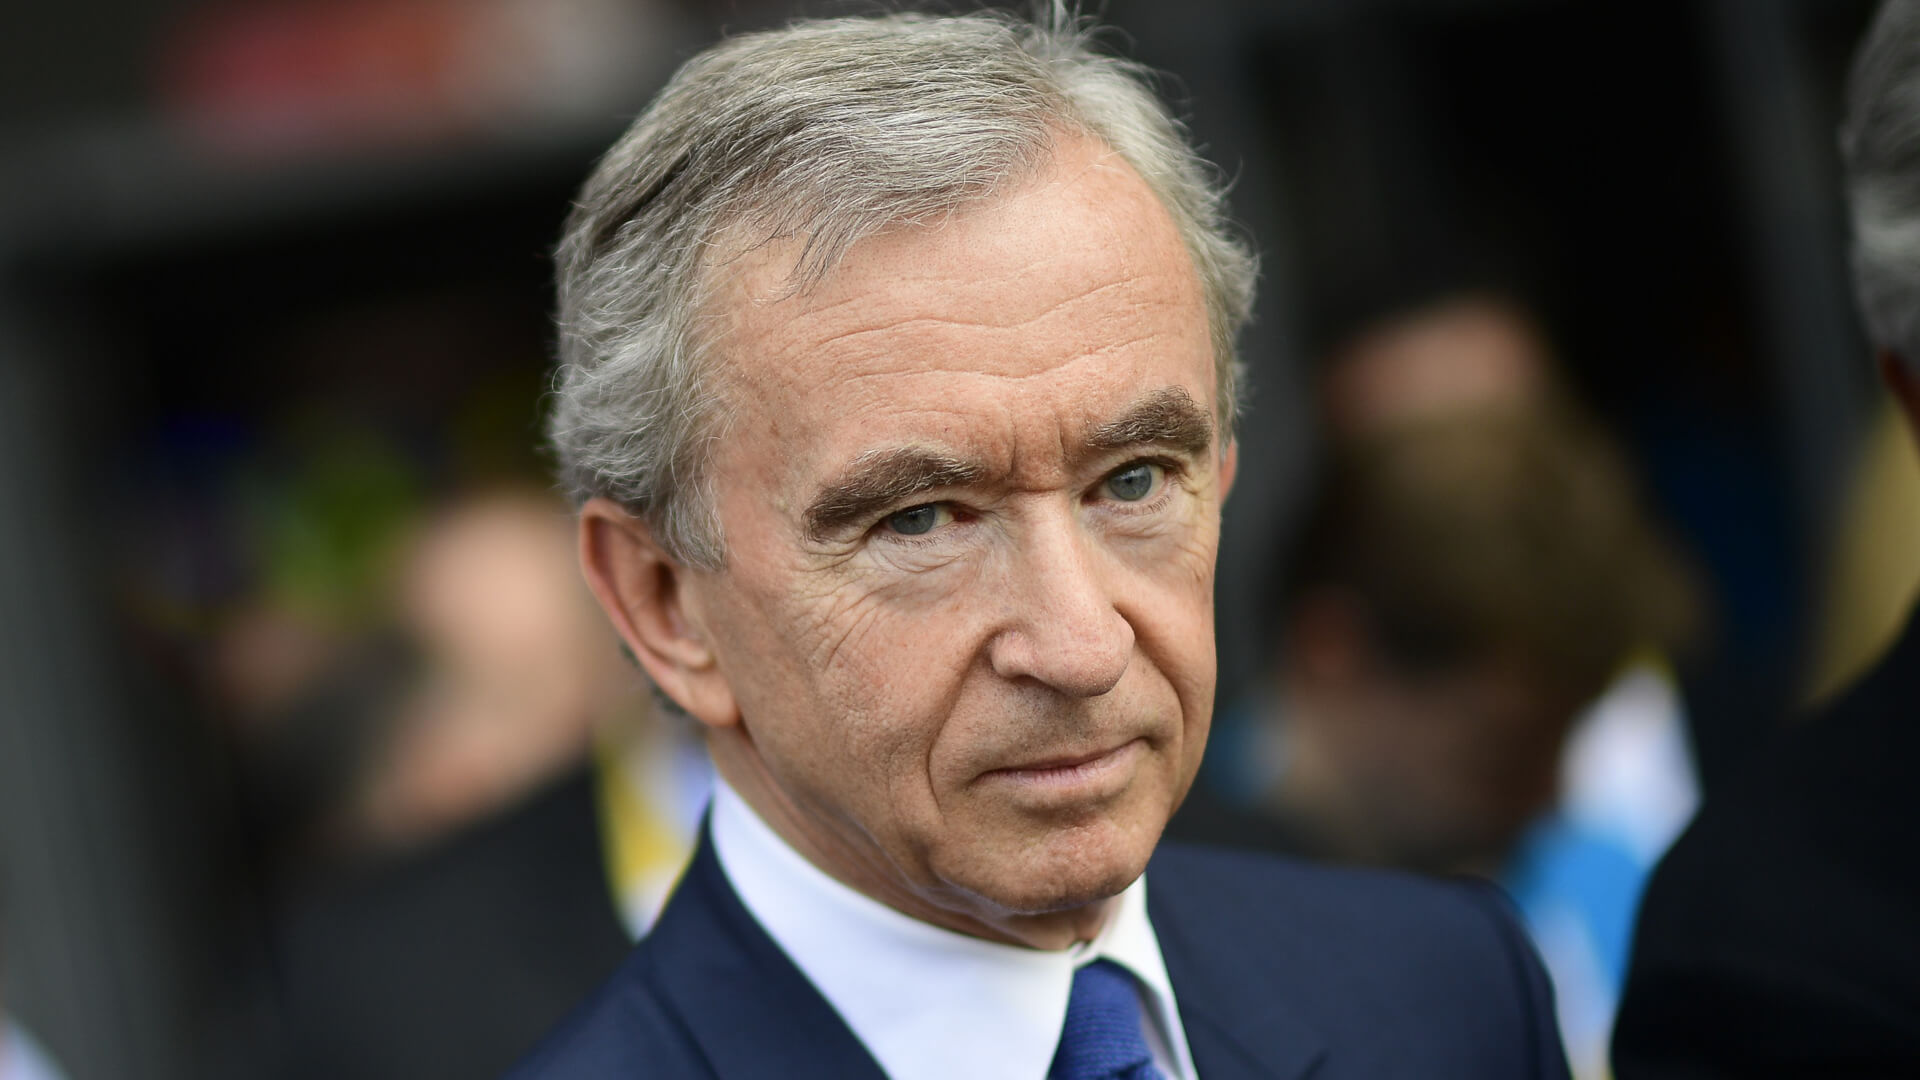 Bernard Arnault donates euros to Notre Dame restoration in Paris France